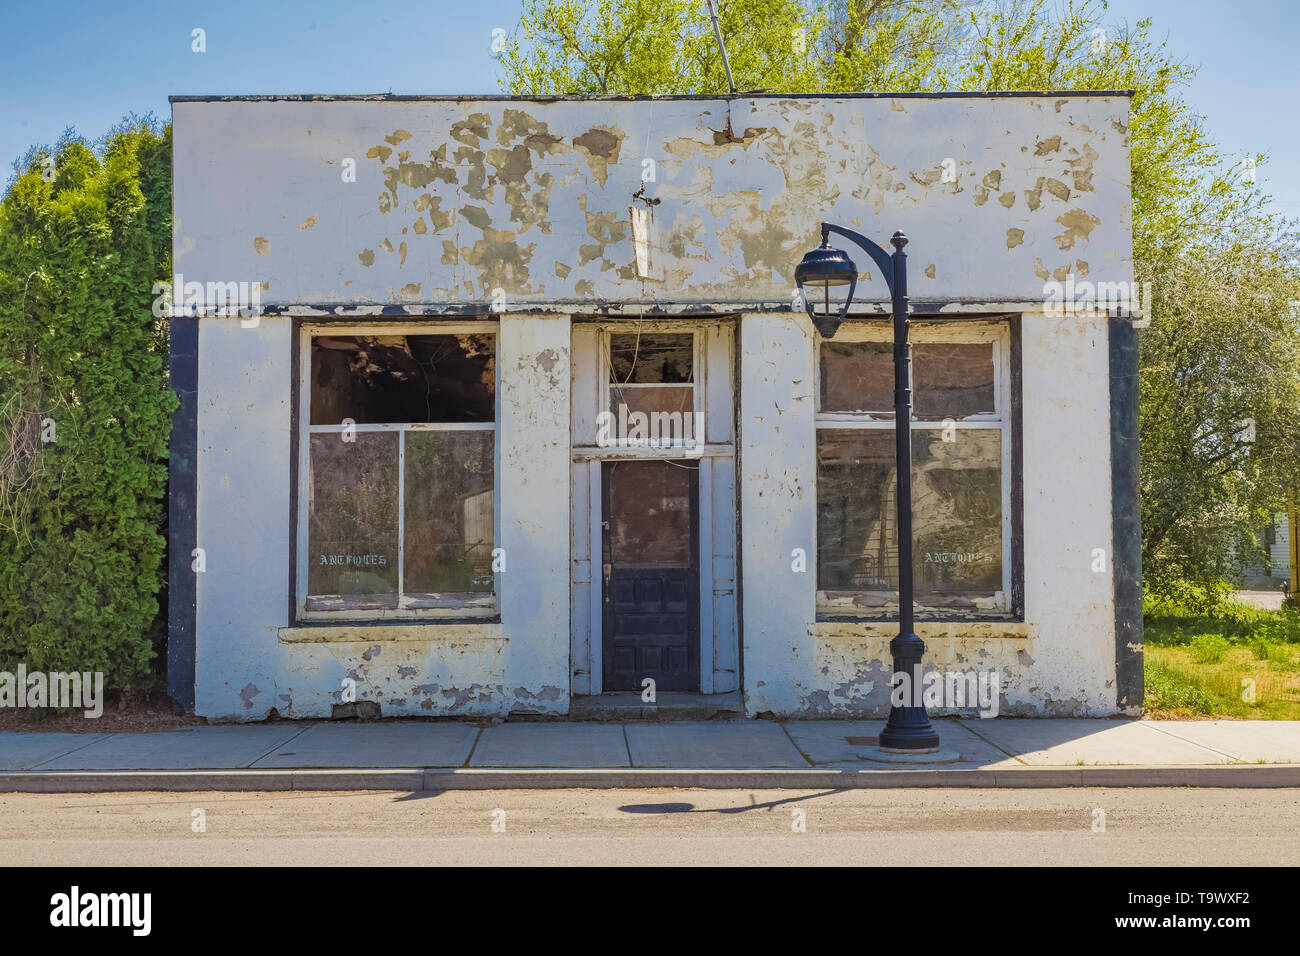 Closed storefront that once sold anitques in Sprague, Washington State, USA [No property release: available only for editorial licensing] - Stock Image